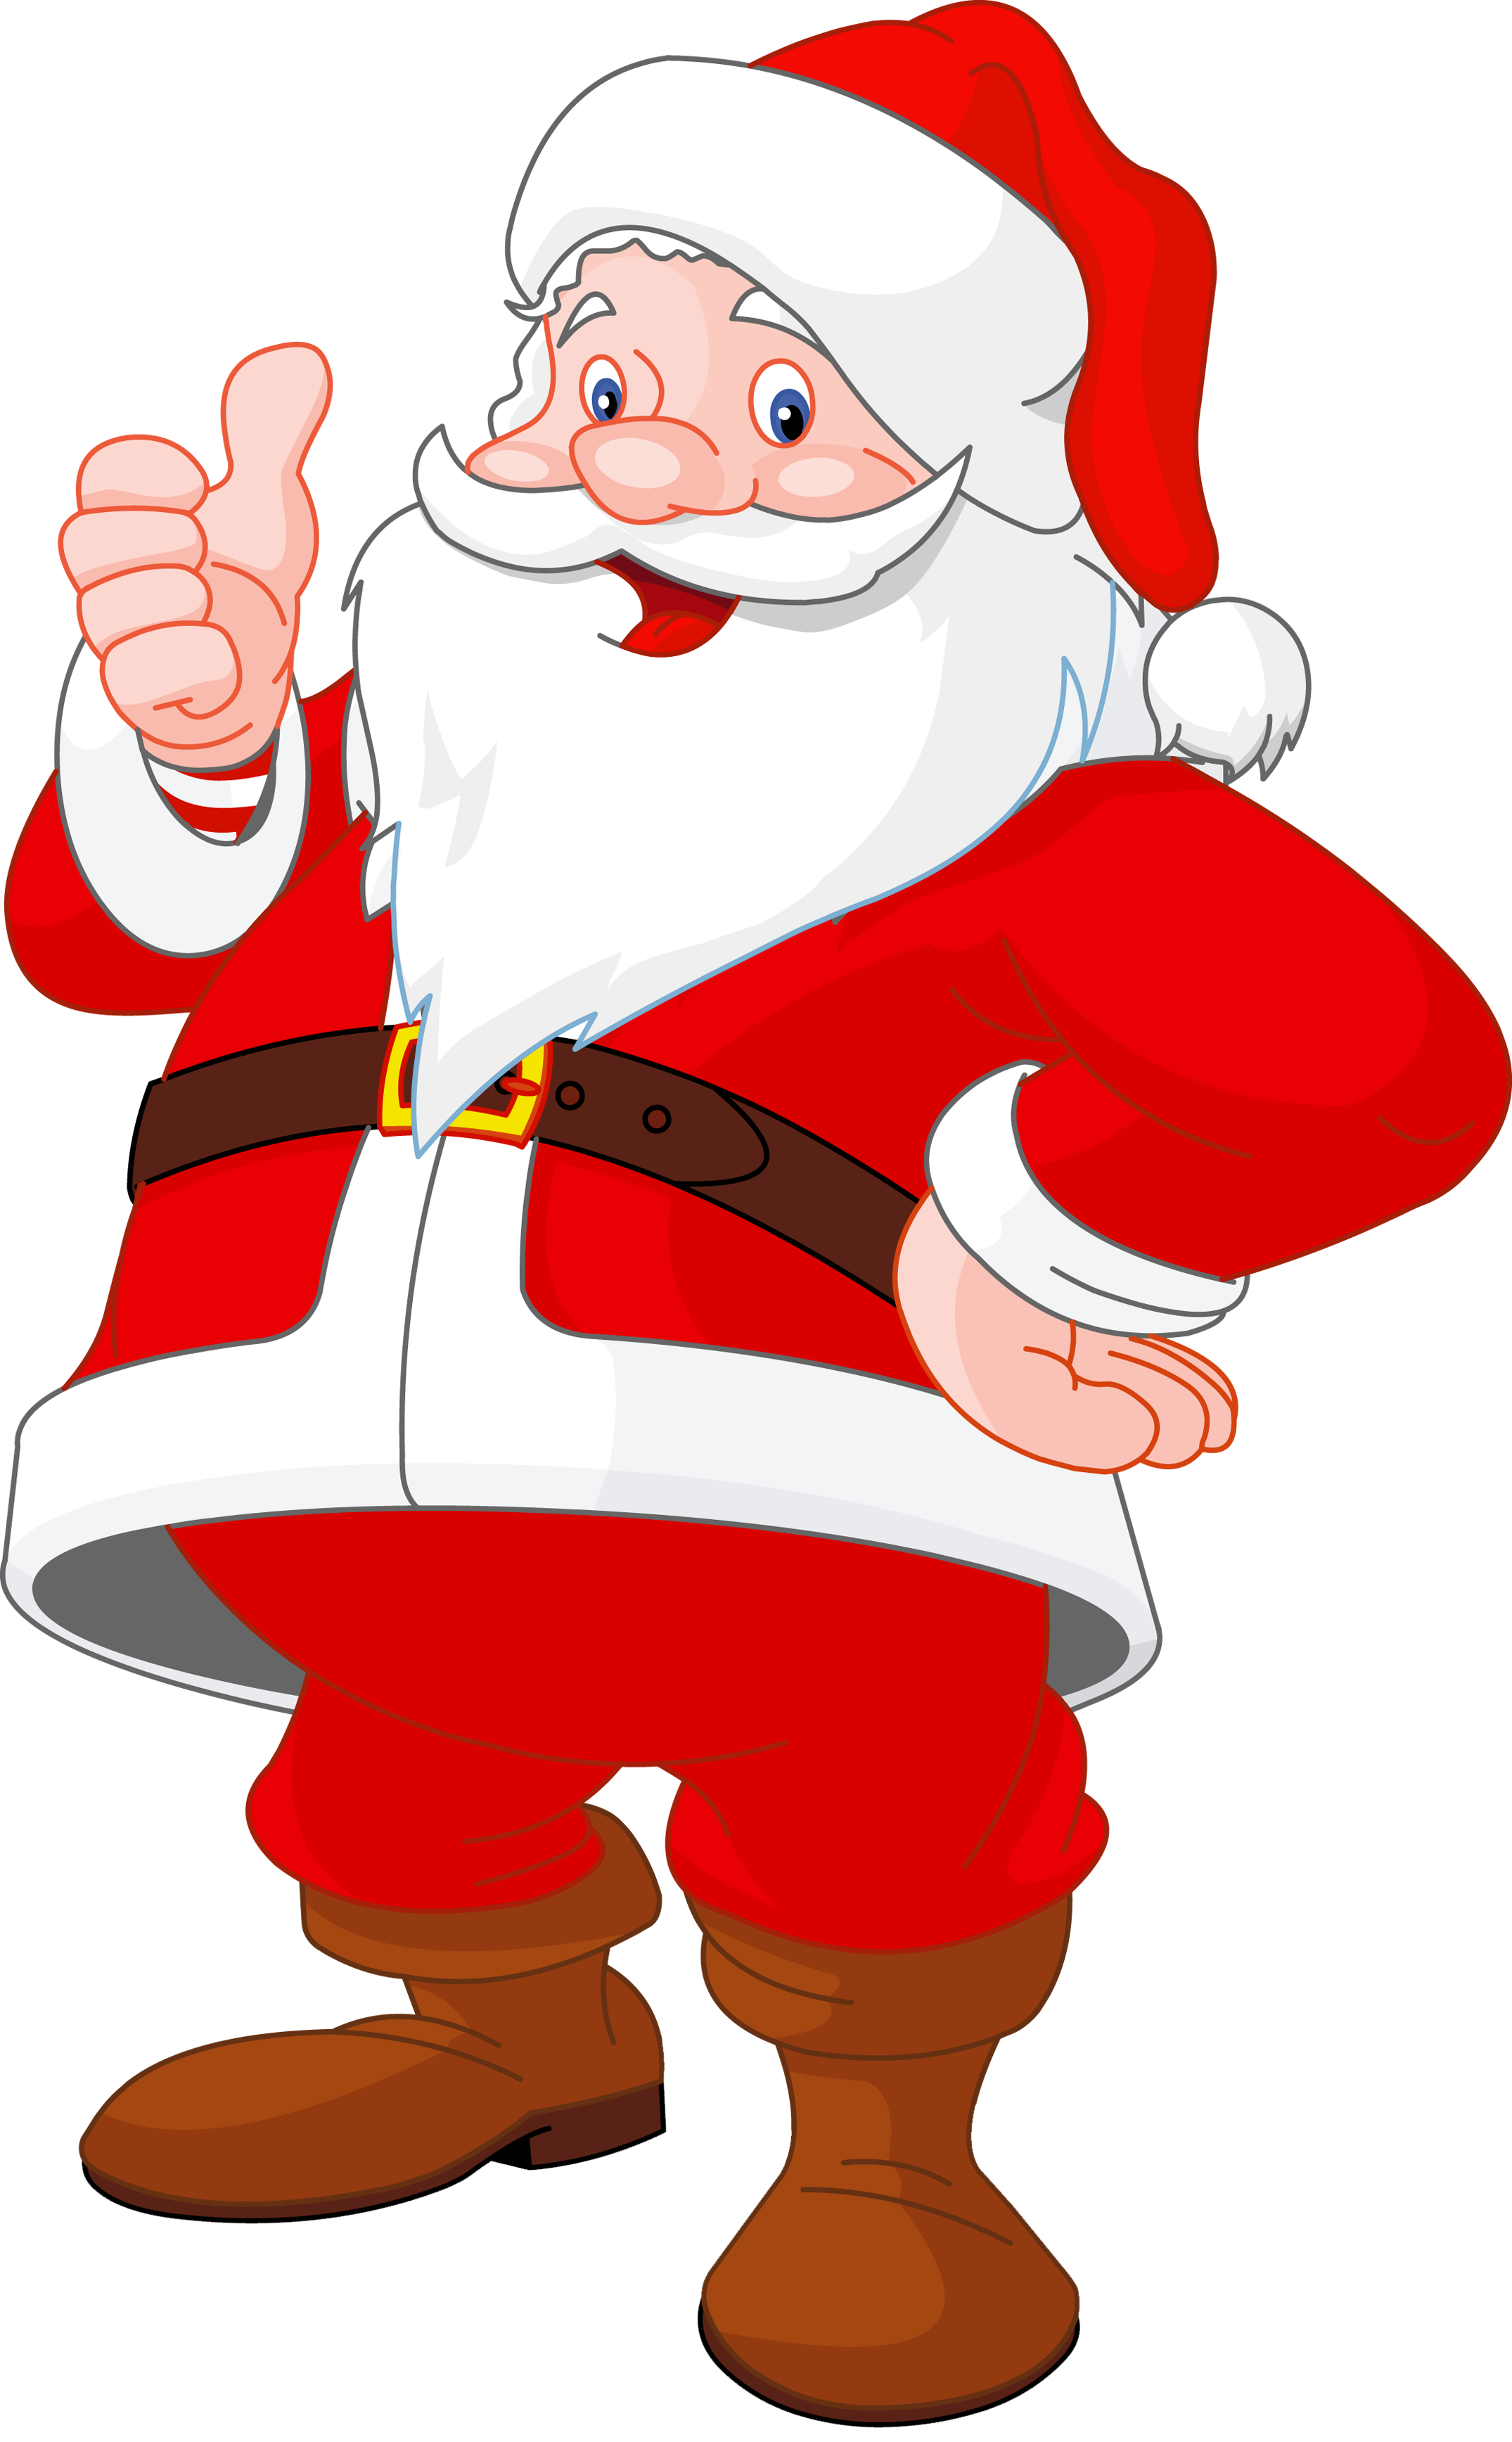 small resolution of santa claus cartoon images free download